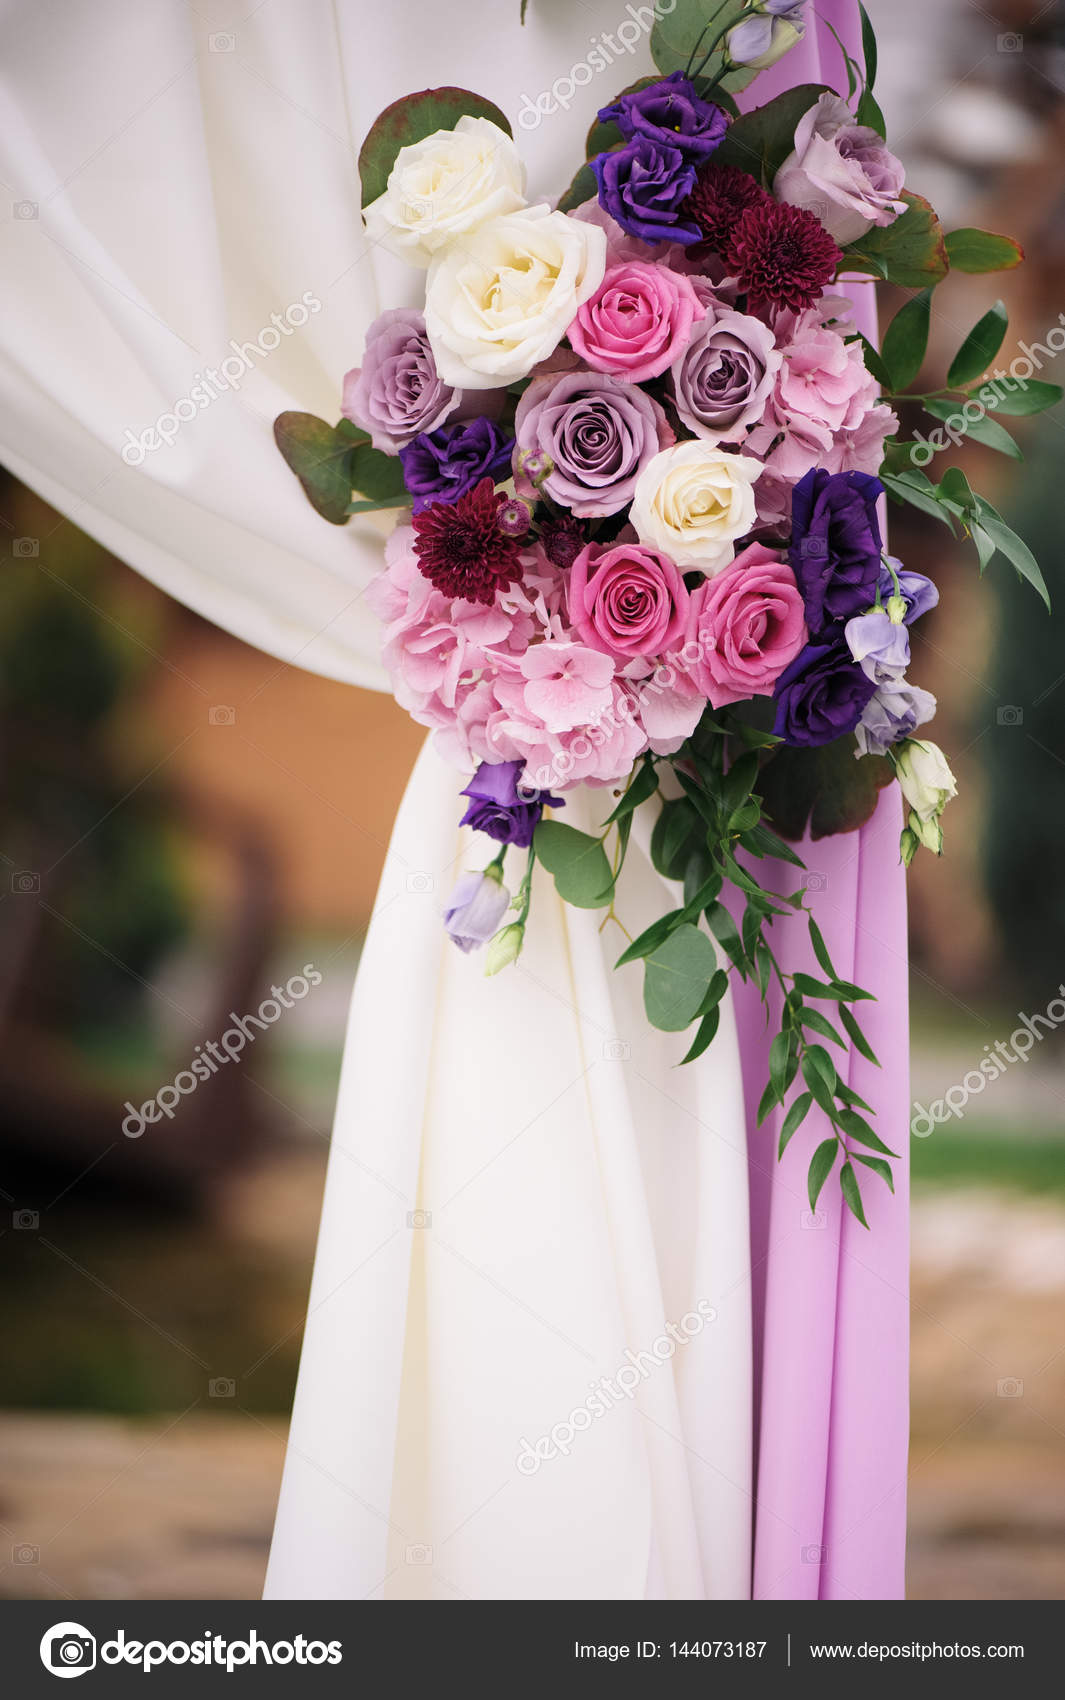 Arch element with flowers for wedding decorations stock photo arch element with flowers for wedding decorations stock photo junglespirit Gallery